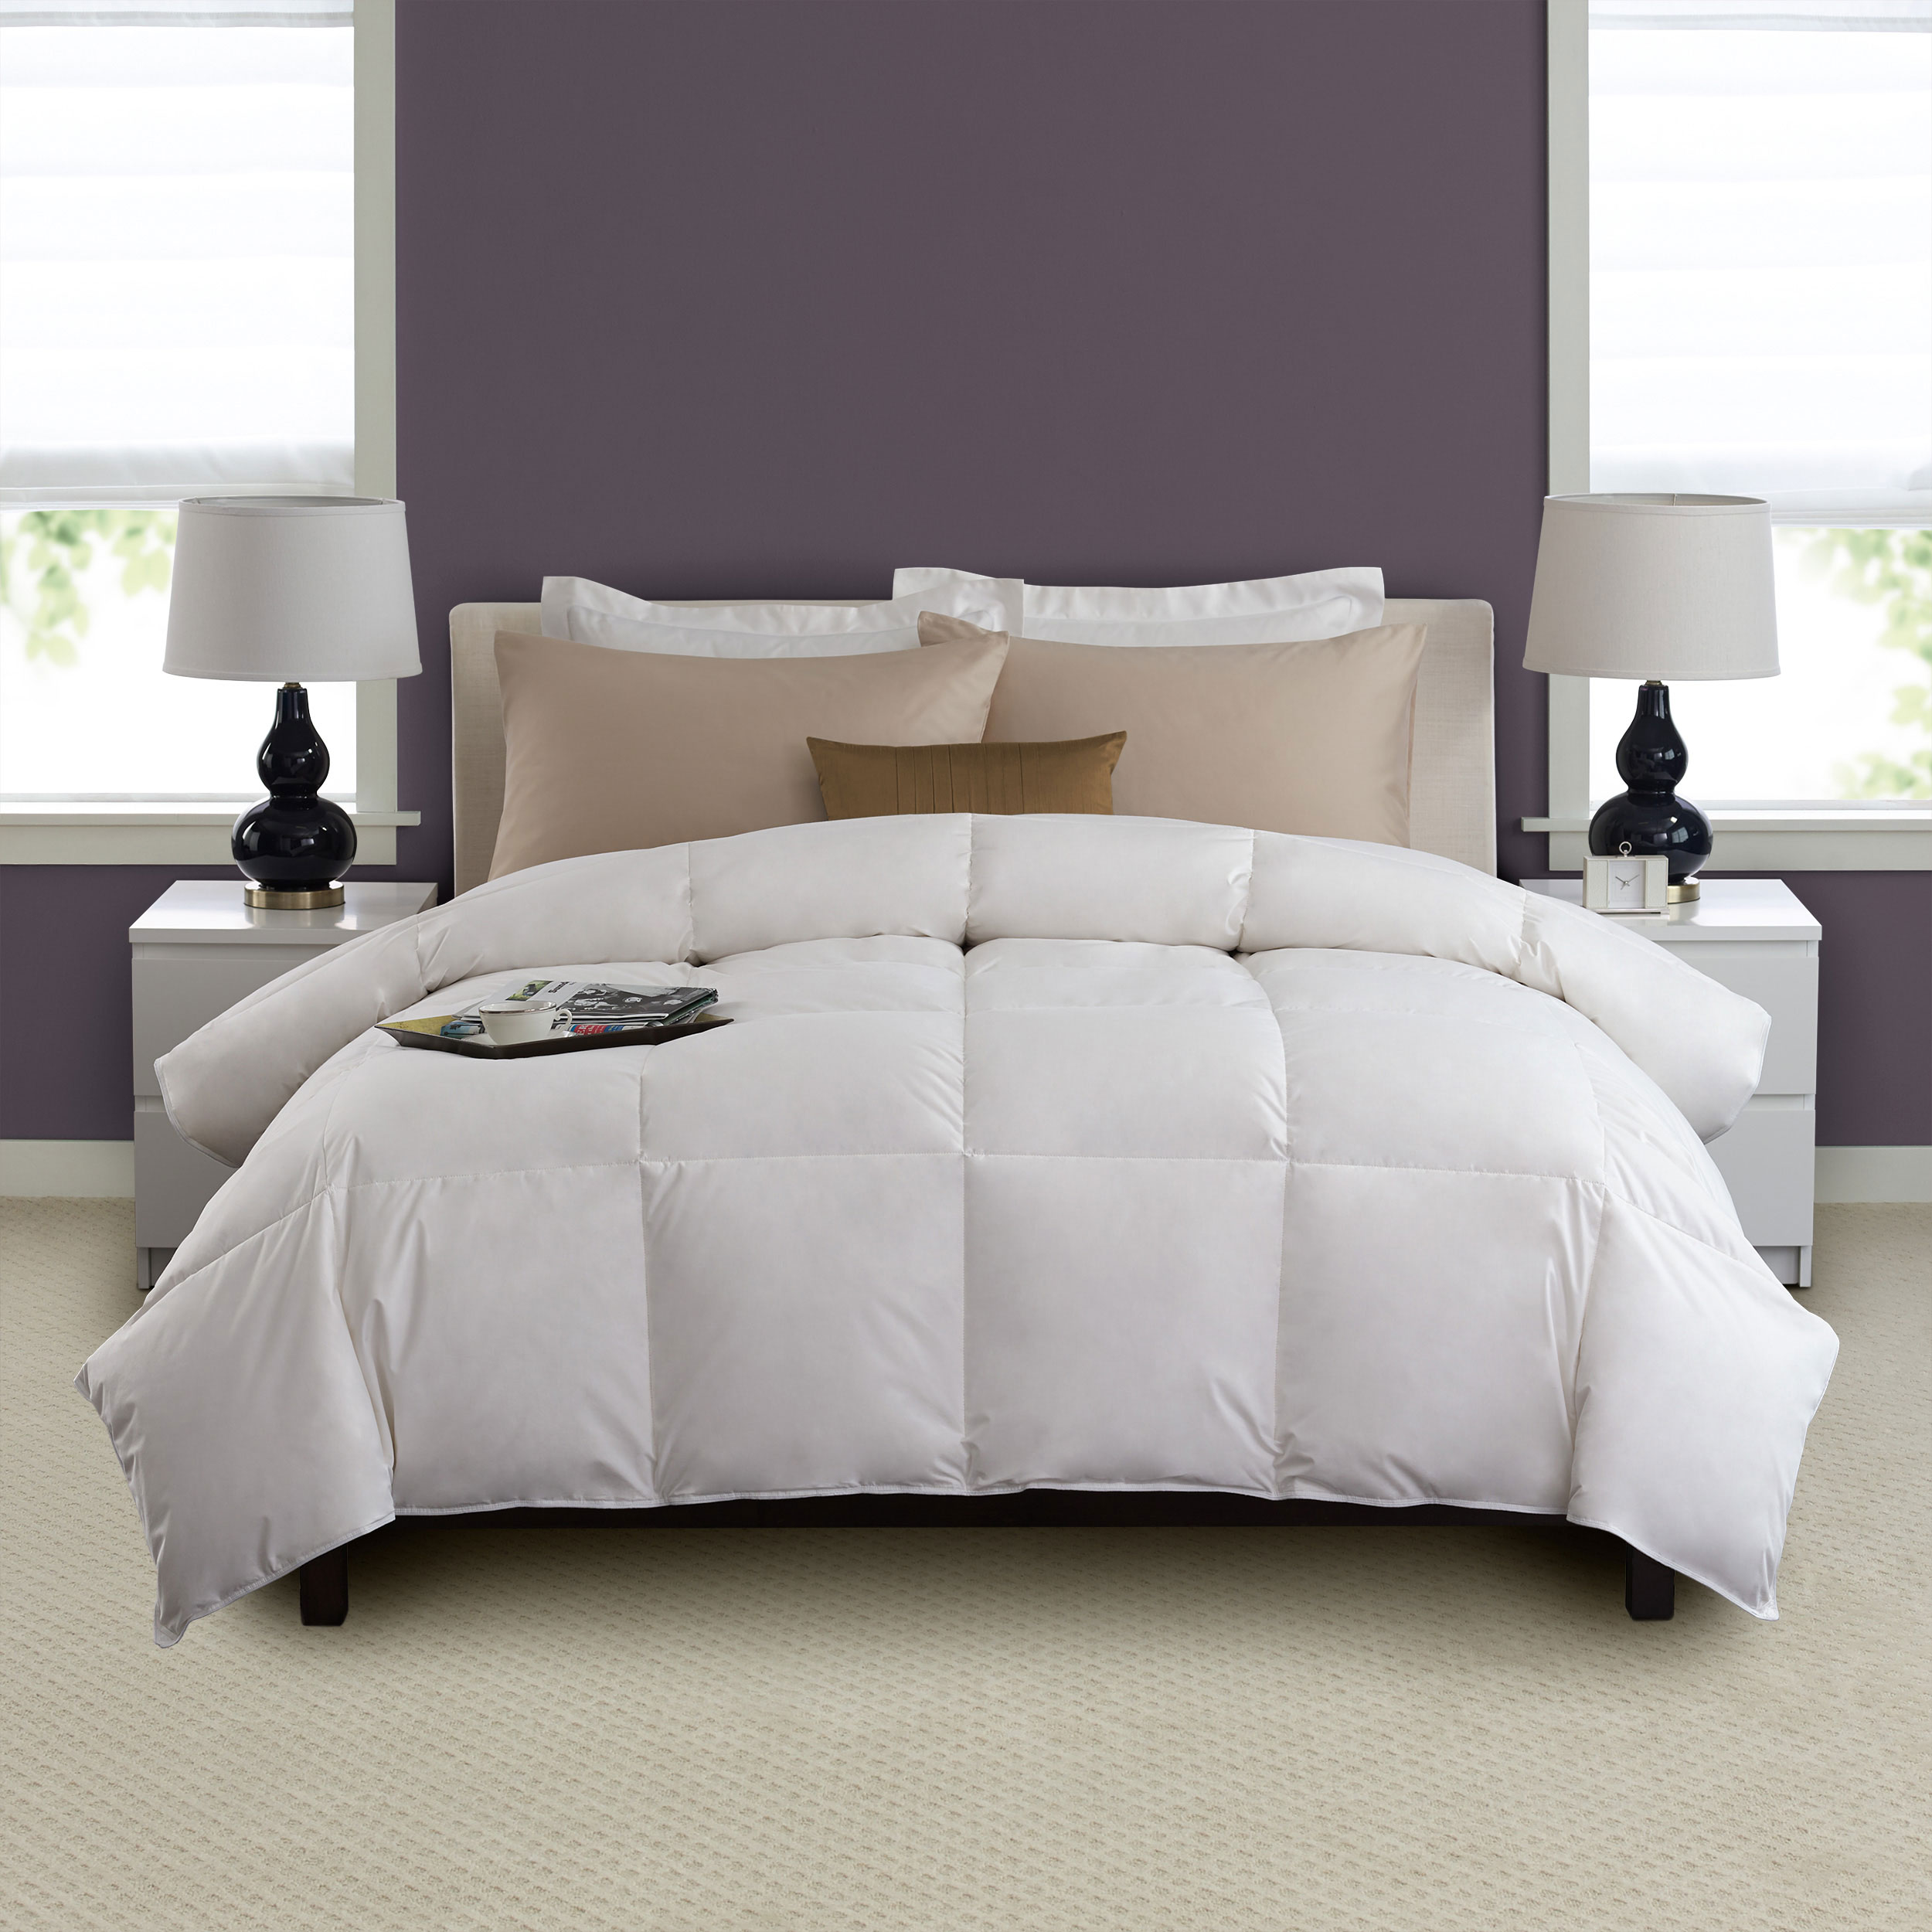 The Ultimate Guide To Washing A Down Comforter Pacific Coast Bedding